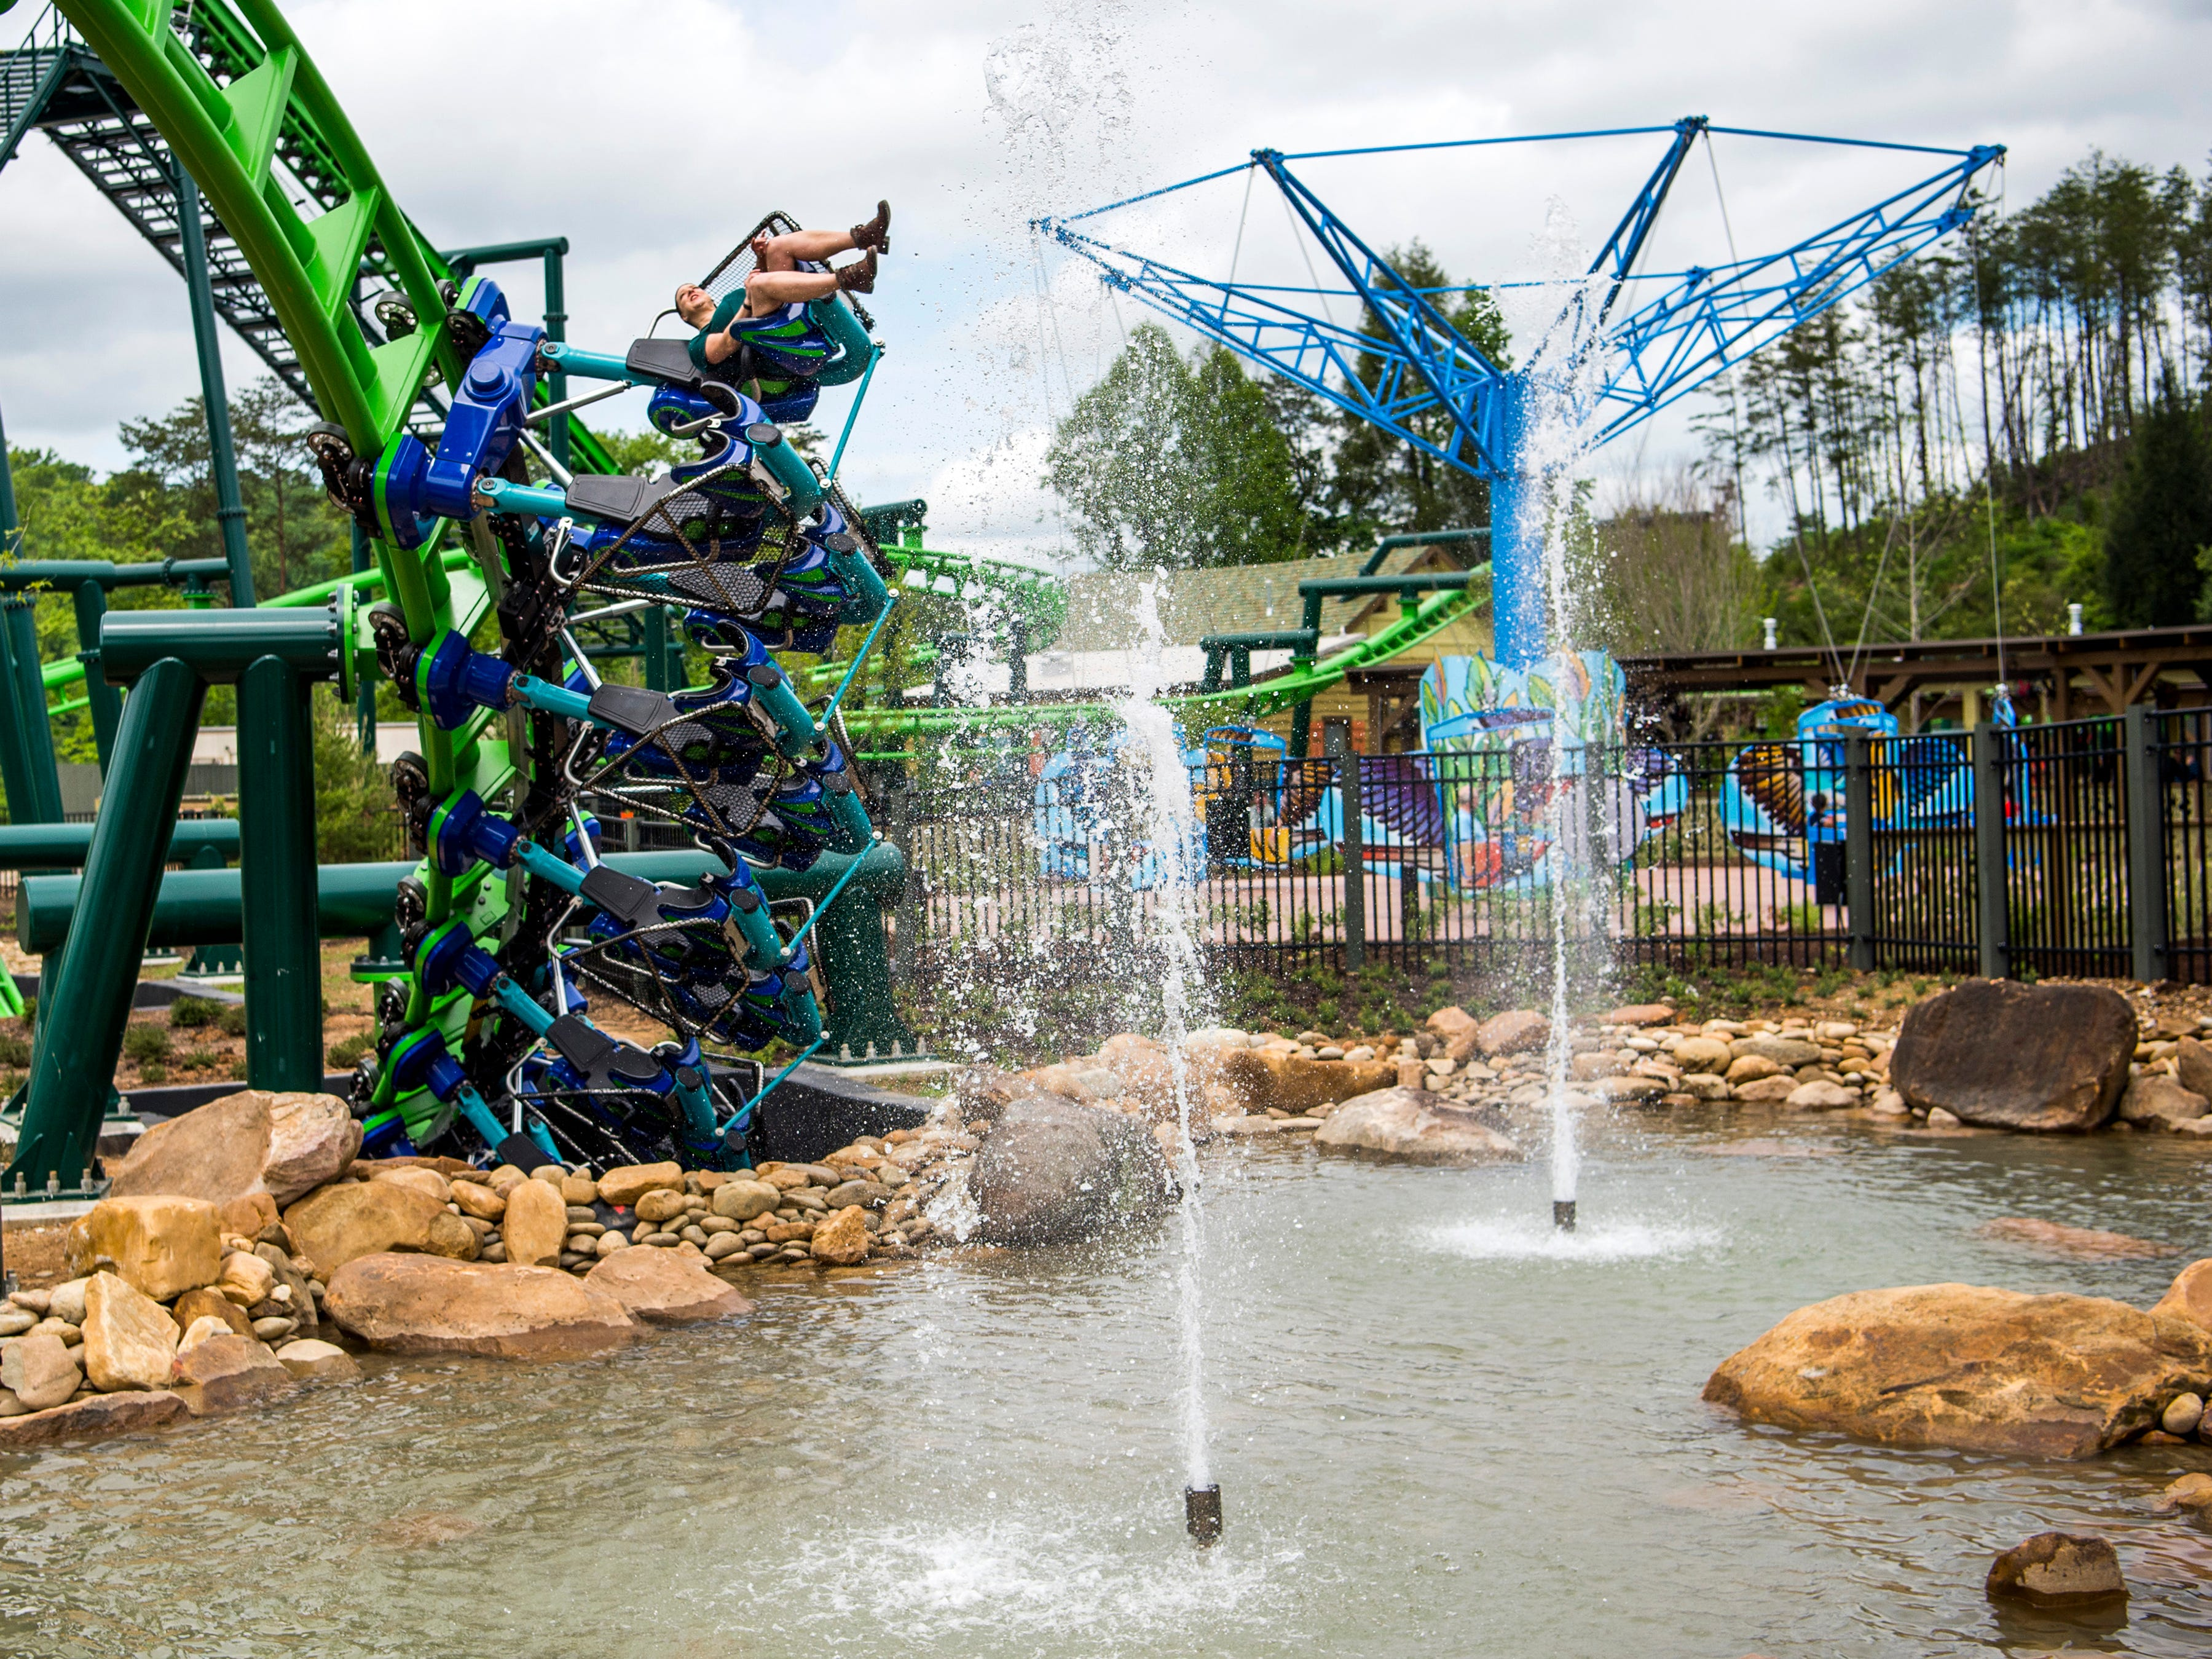 A view inside Dollywood's new Wildwood Grove expansion on Friday, May 10, 2019.